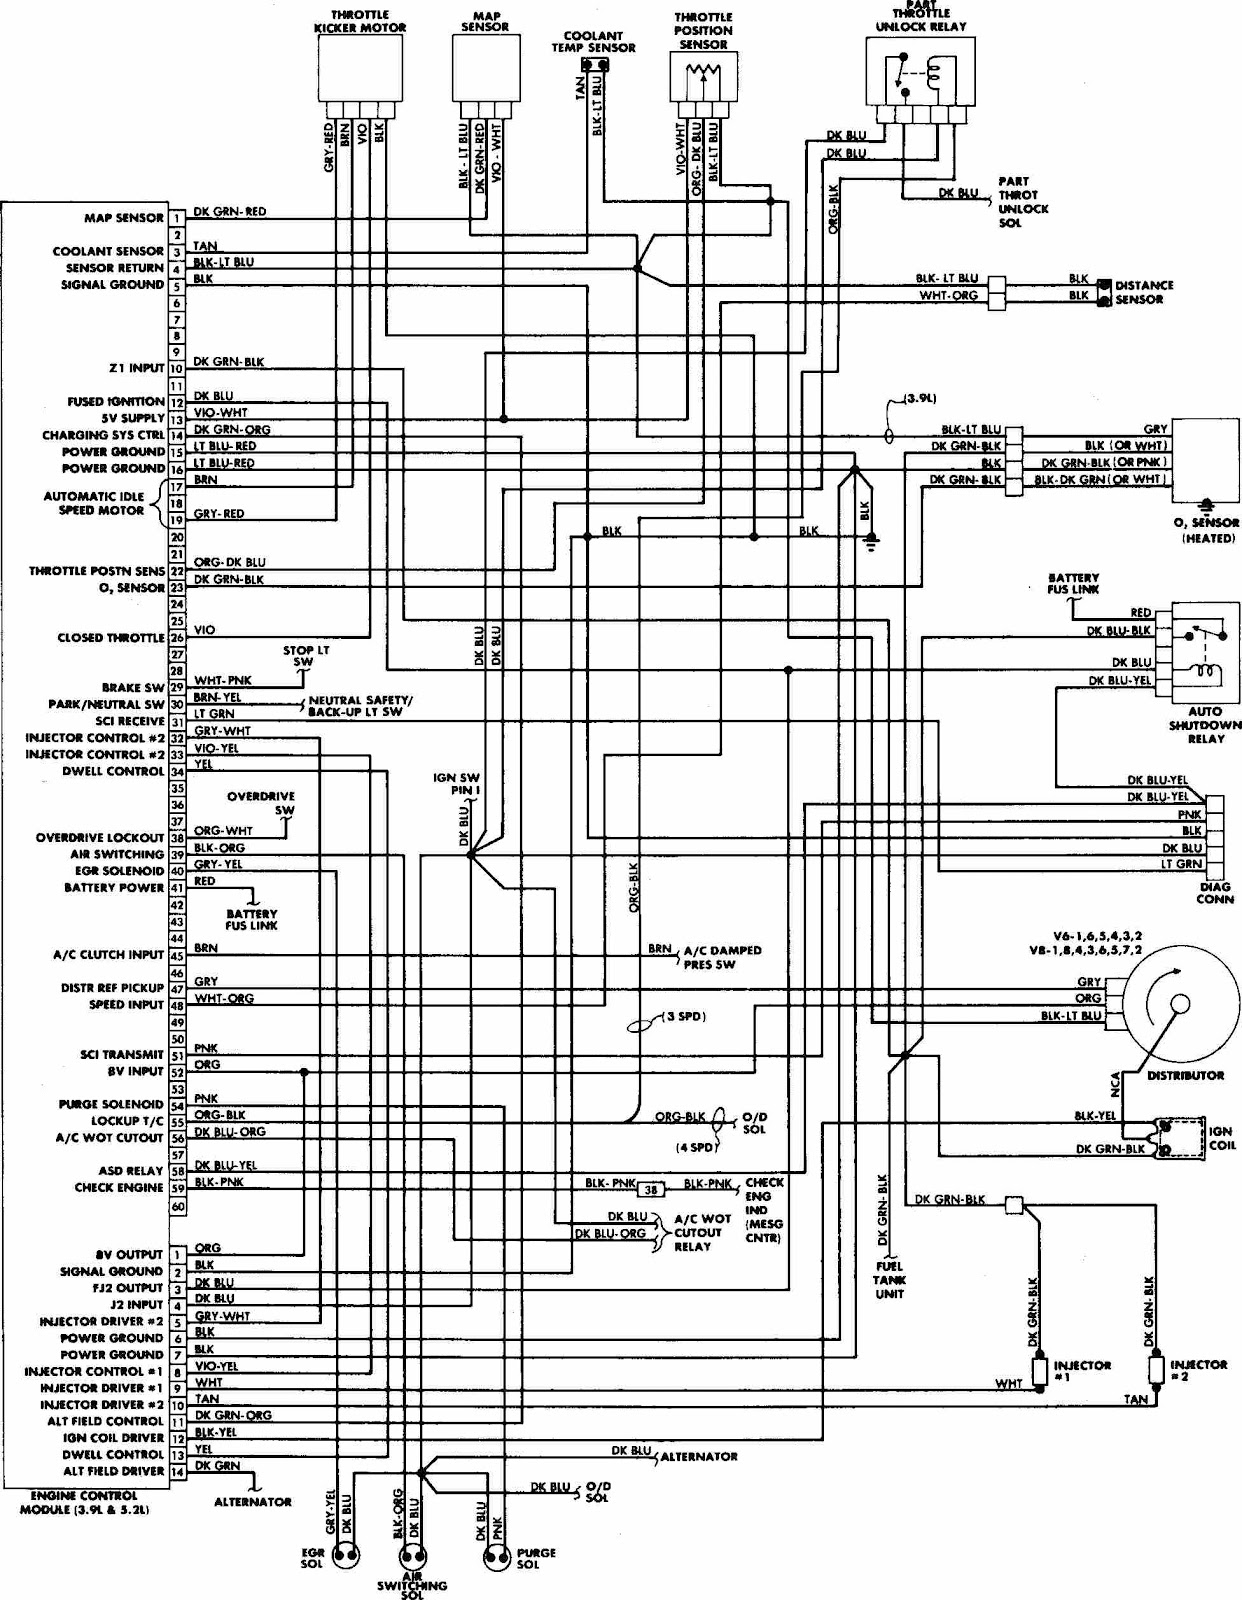 Dodge Ram Truck Power Window Wiring Diagram, Dodge, Get